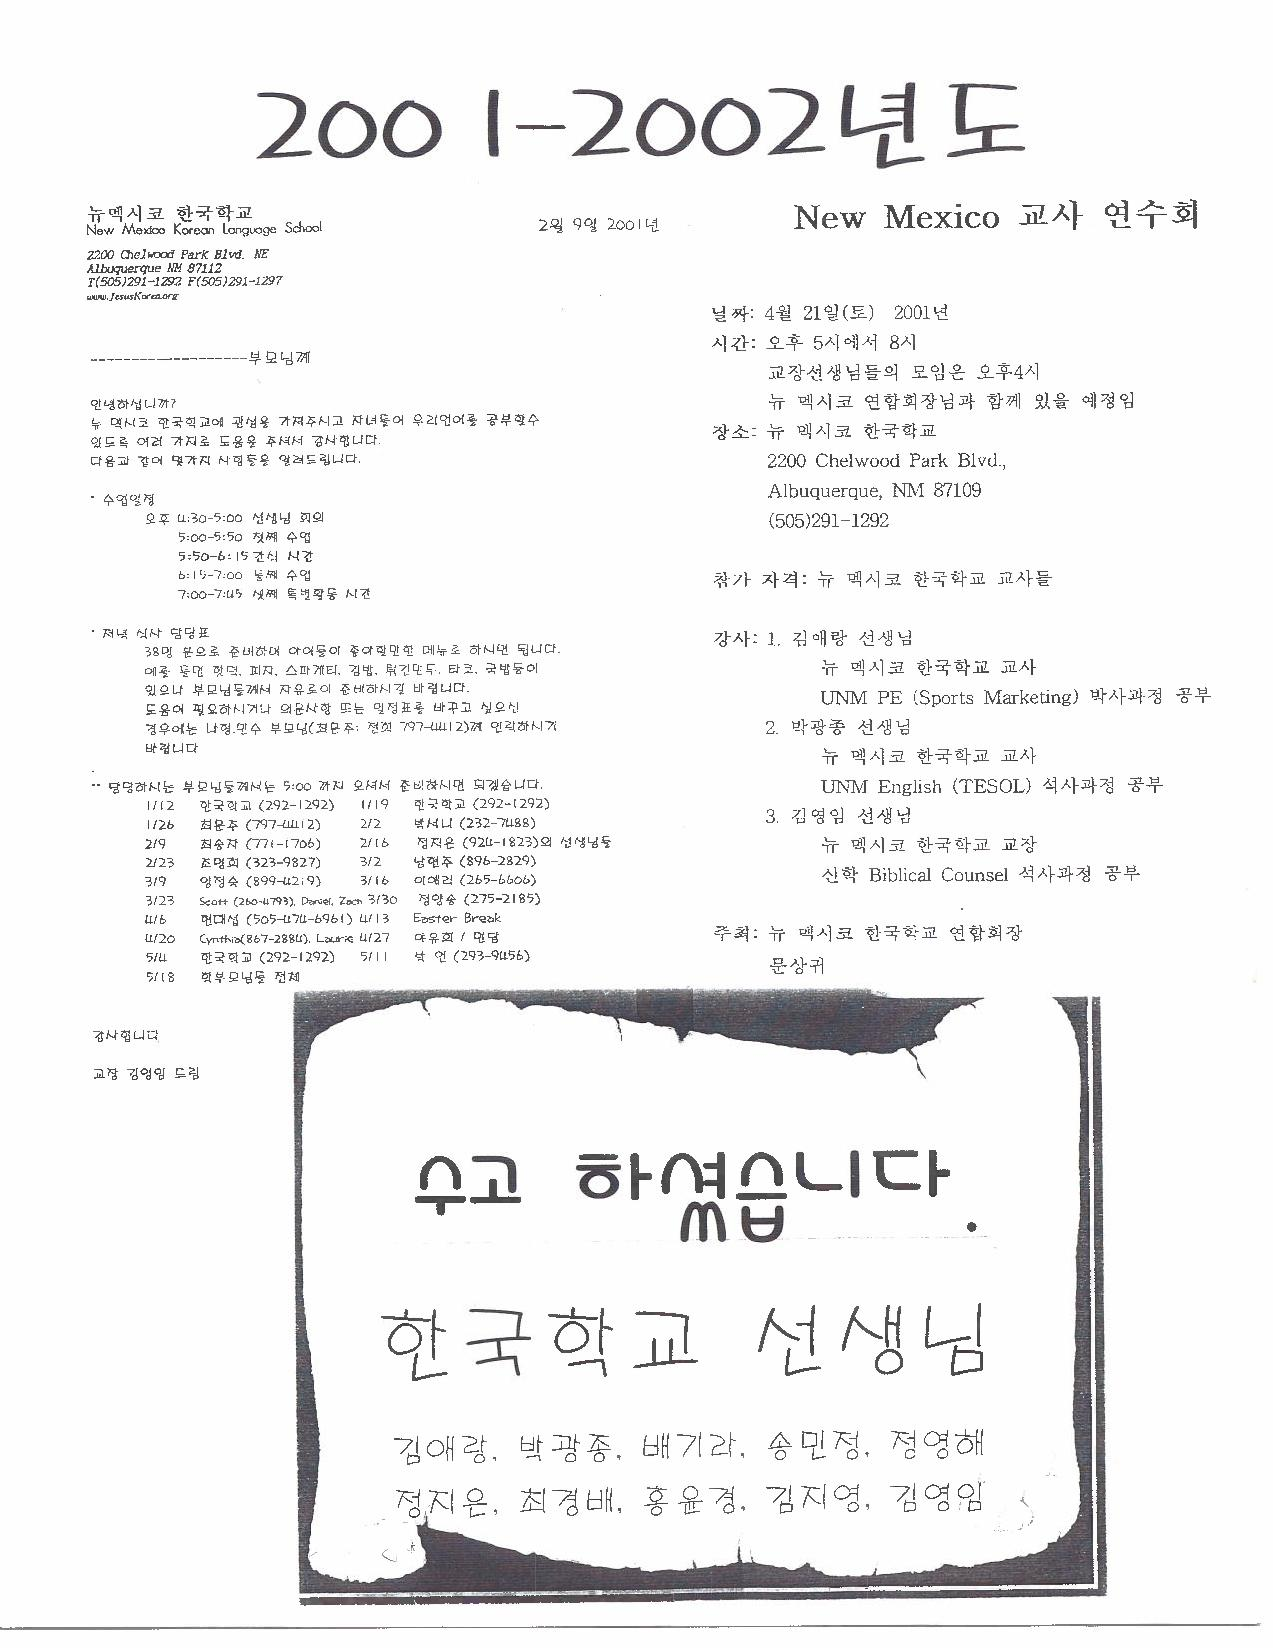 Korean Language School Yr book 01-page-011.jpg